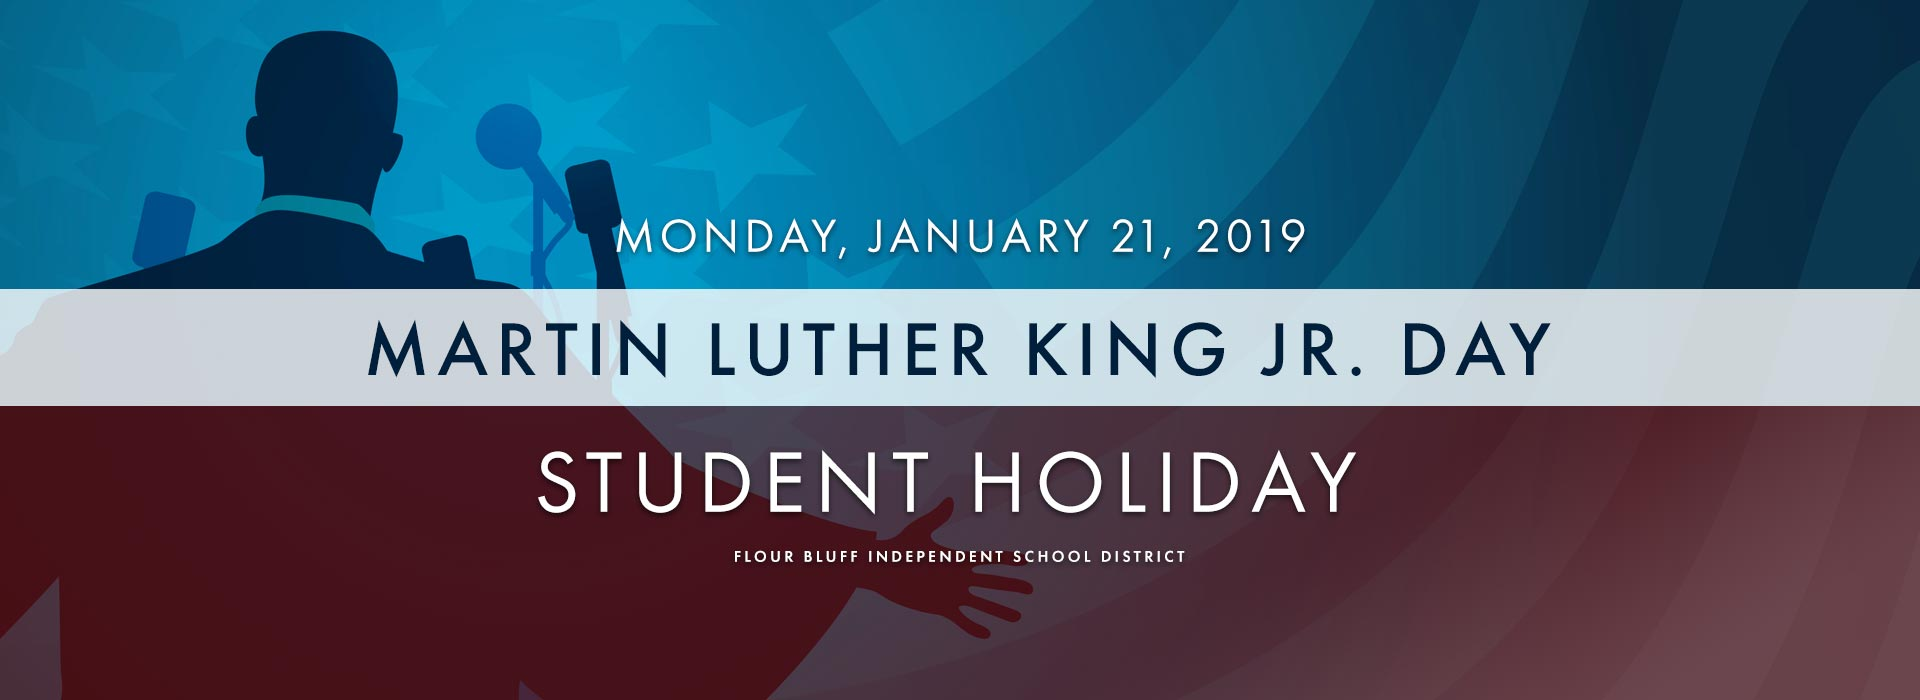 mlk day graphic siting student holiday on january 21 2019